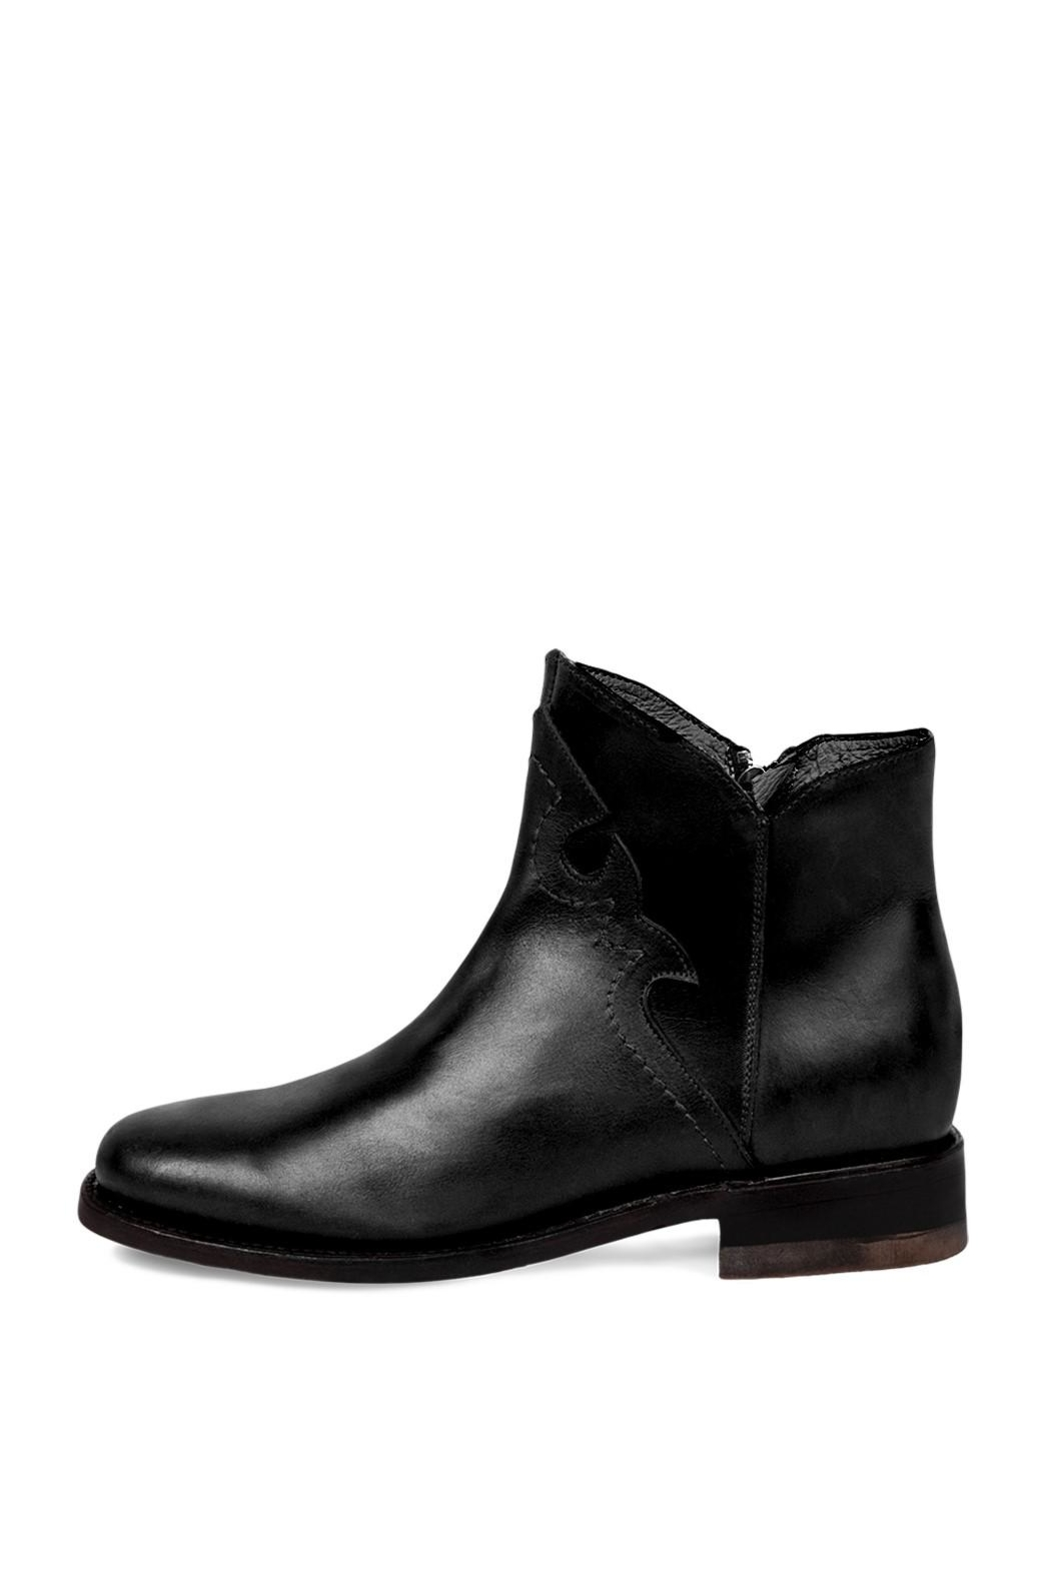 Morkas Shoes British Black - Main Image